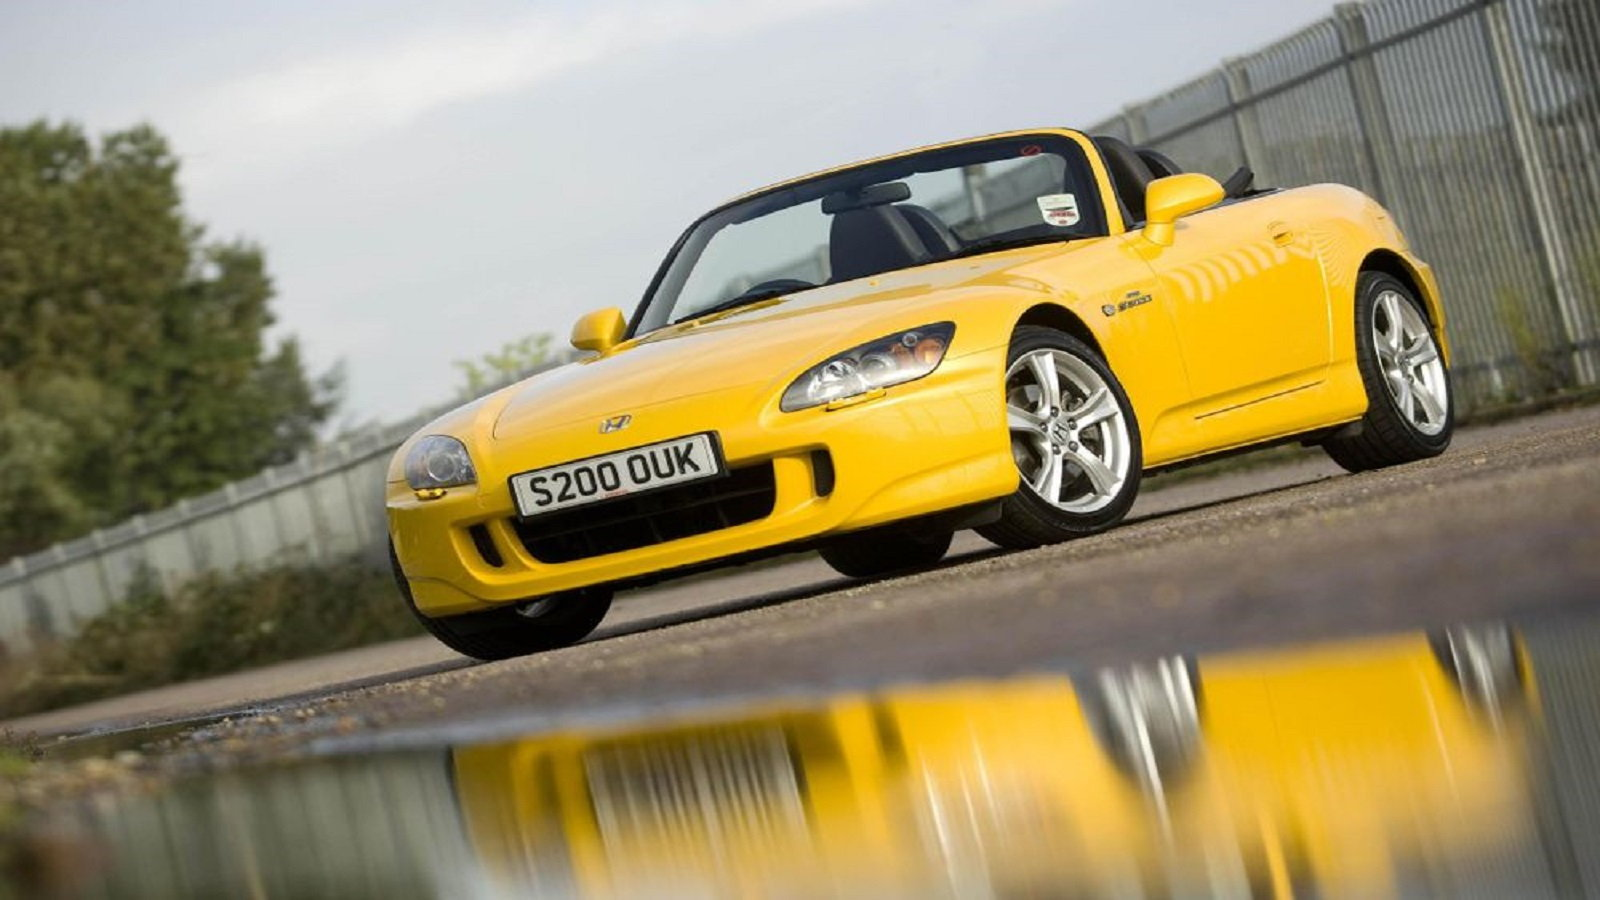 The Return of the S2000?